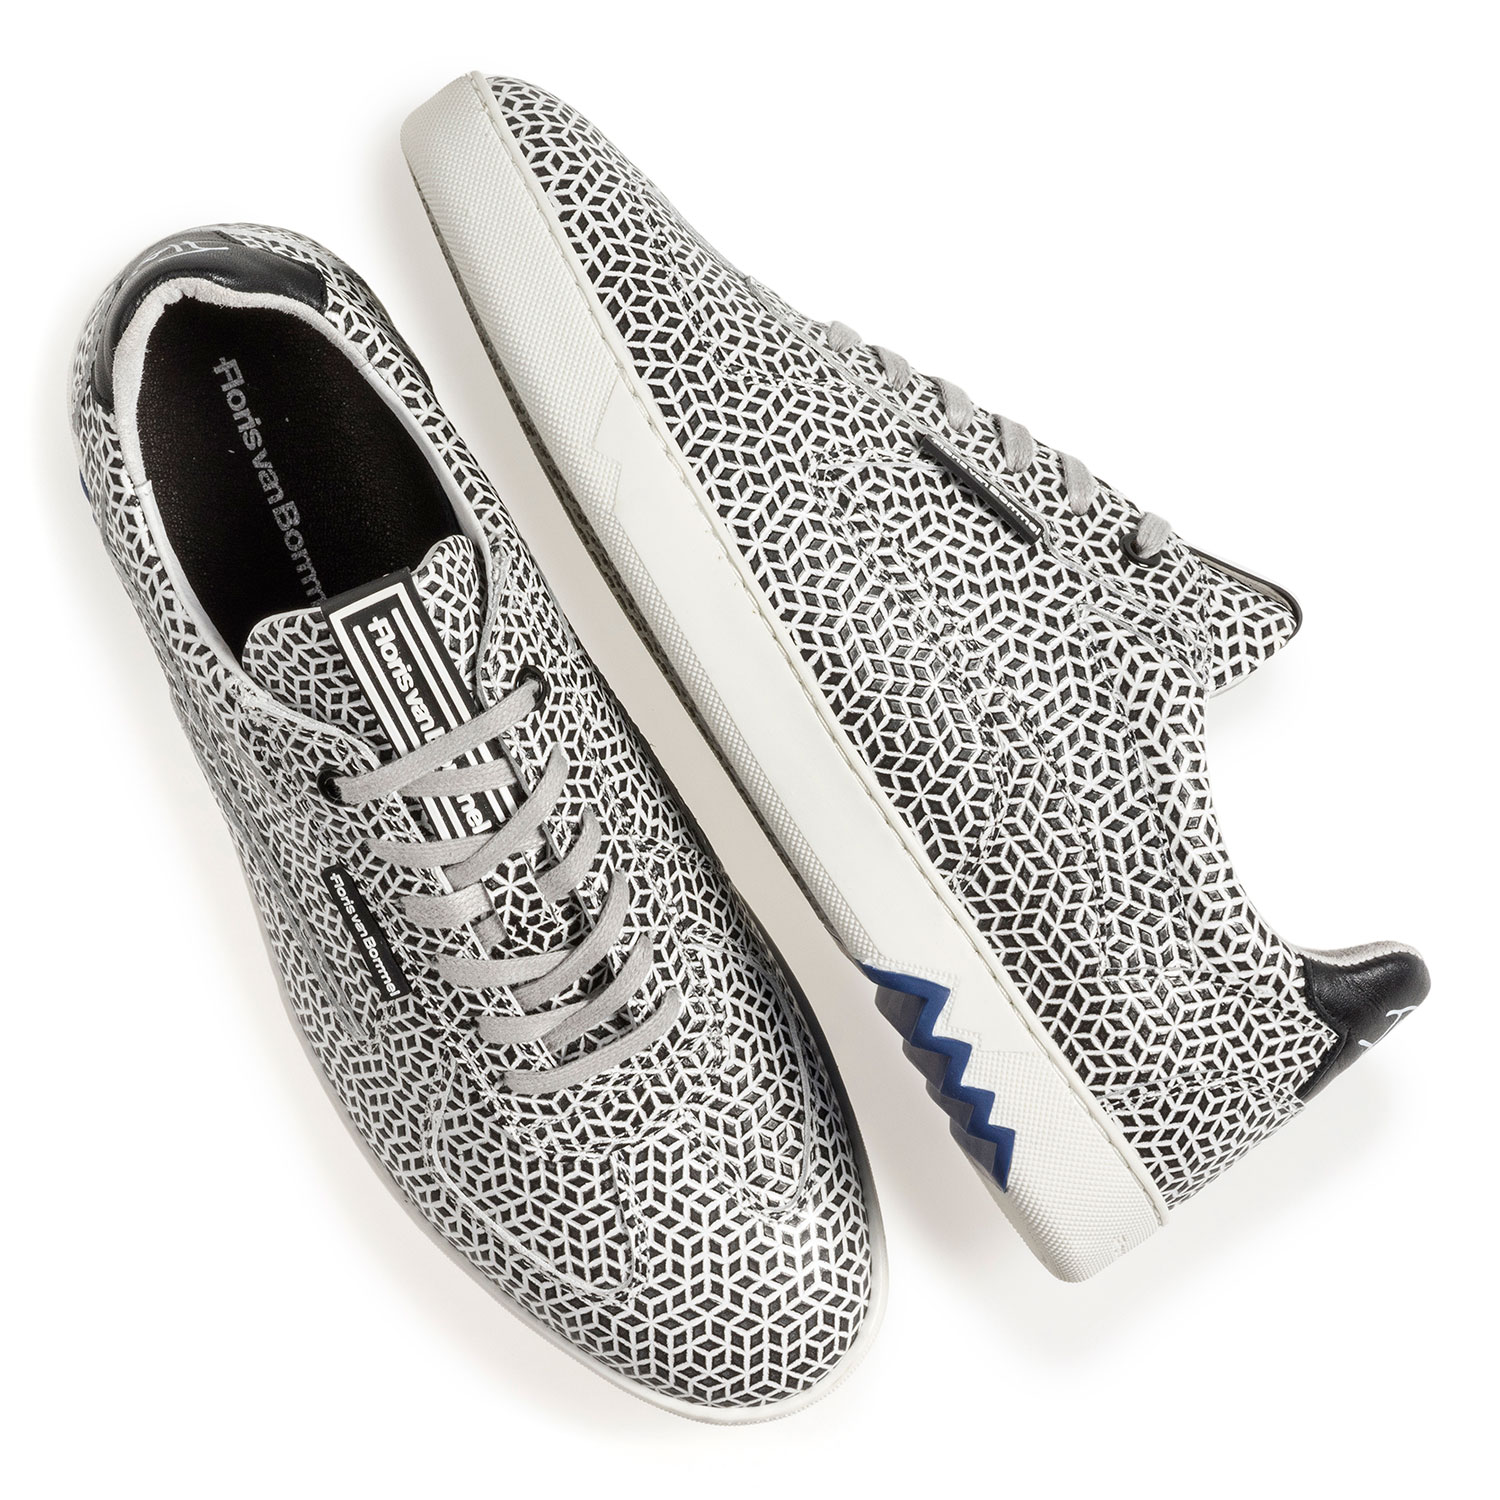 16342/25 - White calf leather sneaker with black print